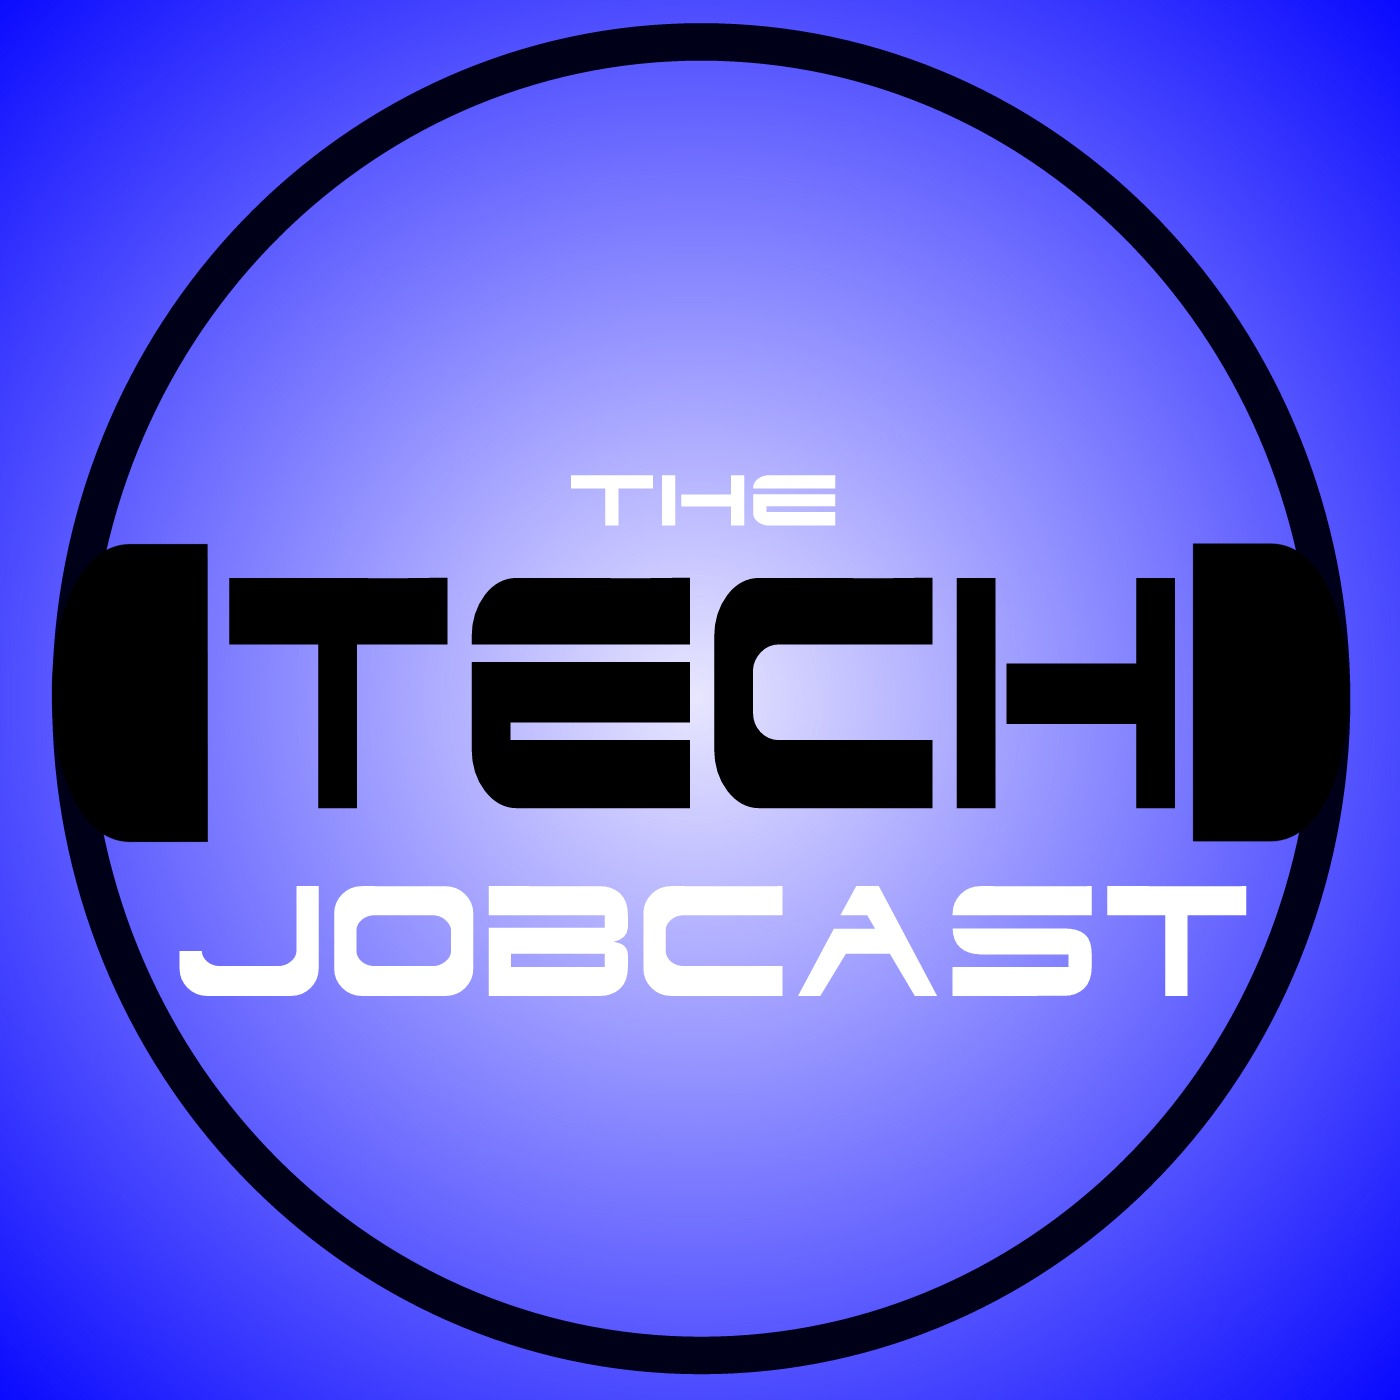 IT Job listings for the week of May 14, 2017